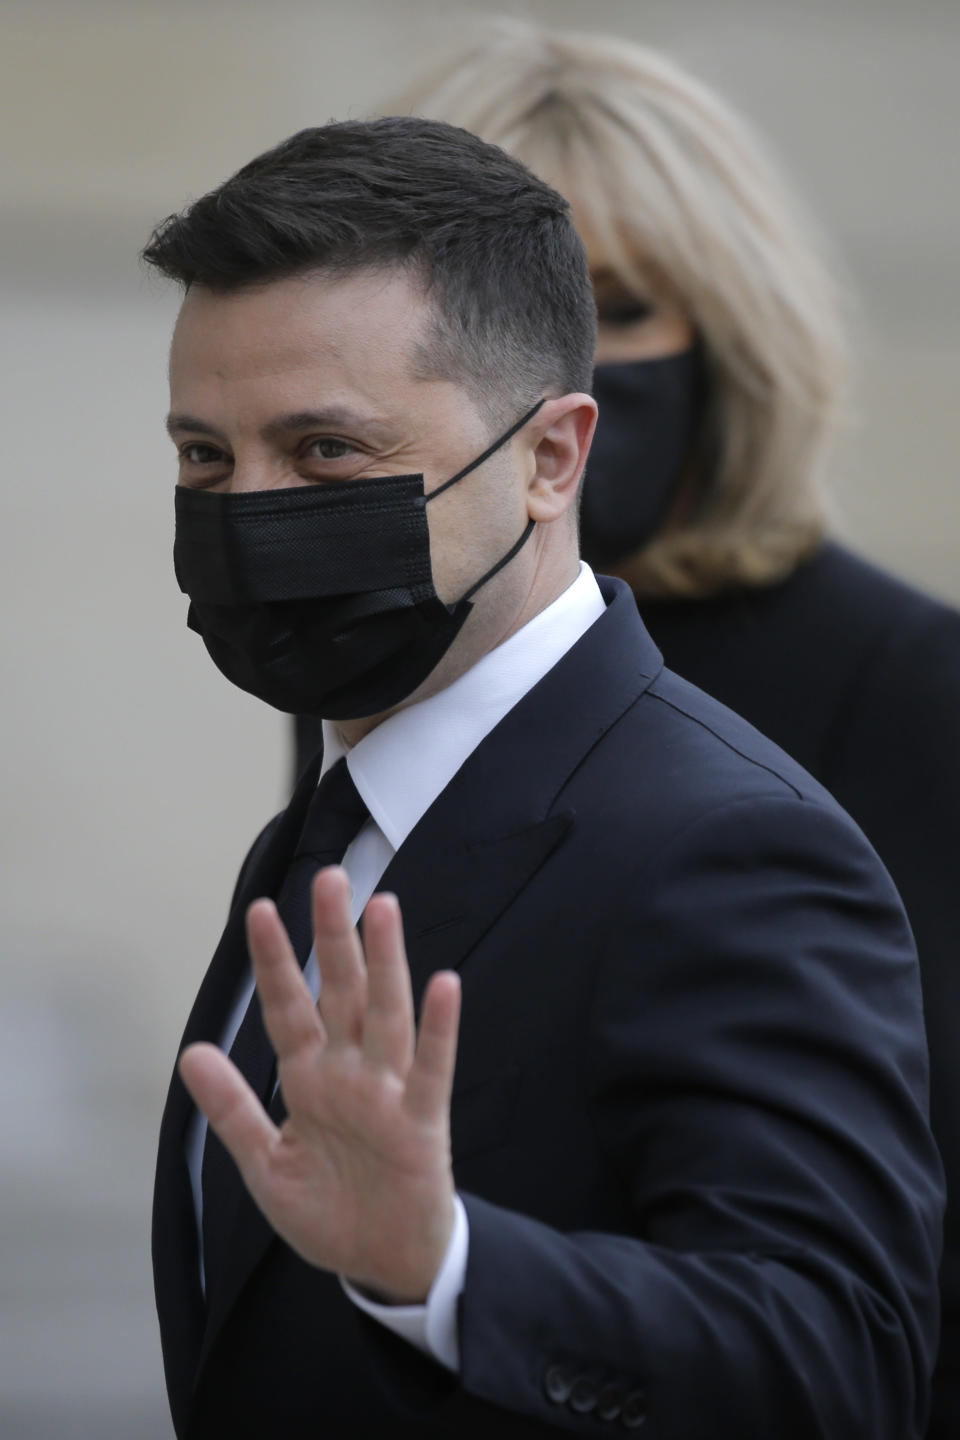 Ukrainian President Volodymyr Zelenskyy gestures as he arrives at the Elysee palace in Paris, Friday, April 16, 2021. Ukrainian President Volodymyr Zelenskyy is holding talks with French President Emmanuel Macron and German Chancellor Angela Merkel amid growing tensions with Russia, which has deployed troops at the border with the country. (AP Photo/Lewis Joly)